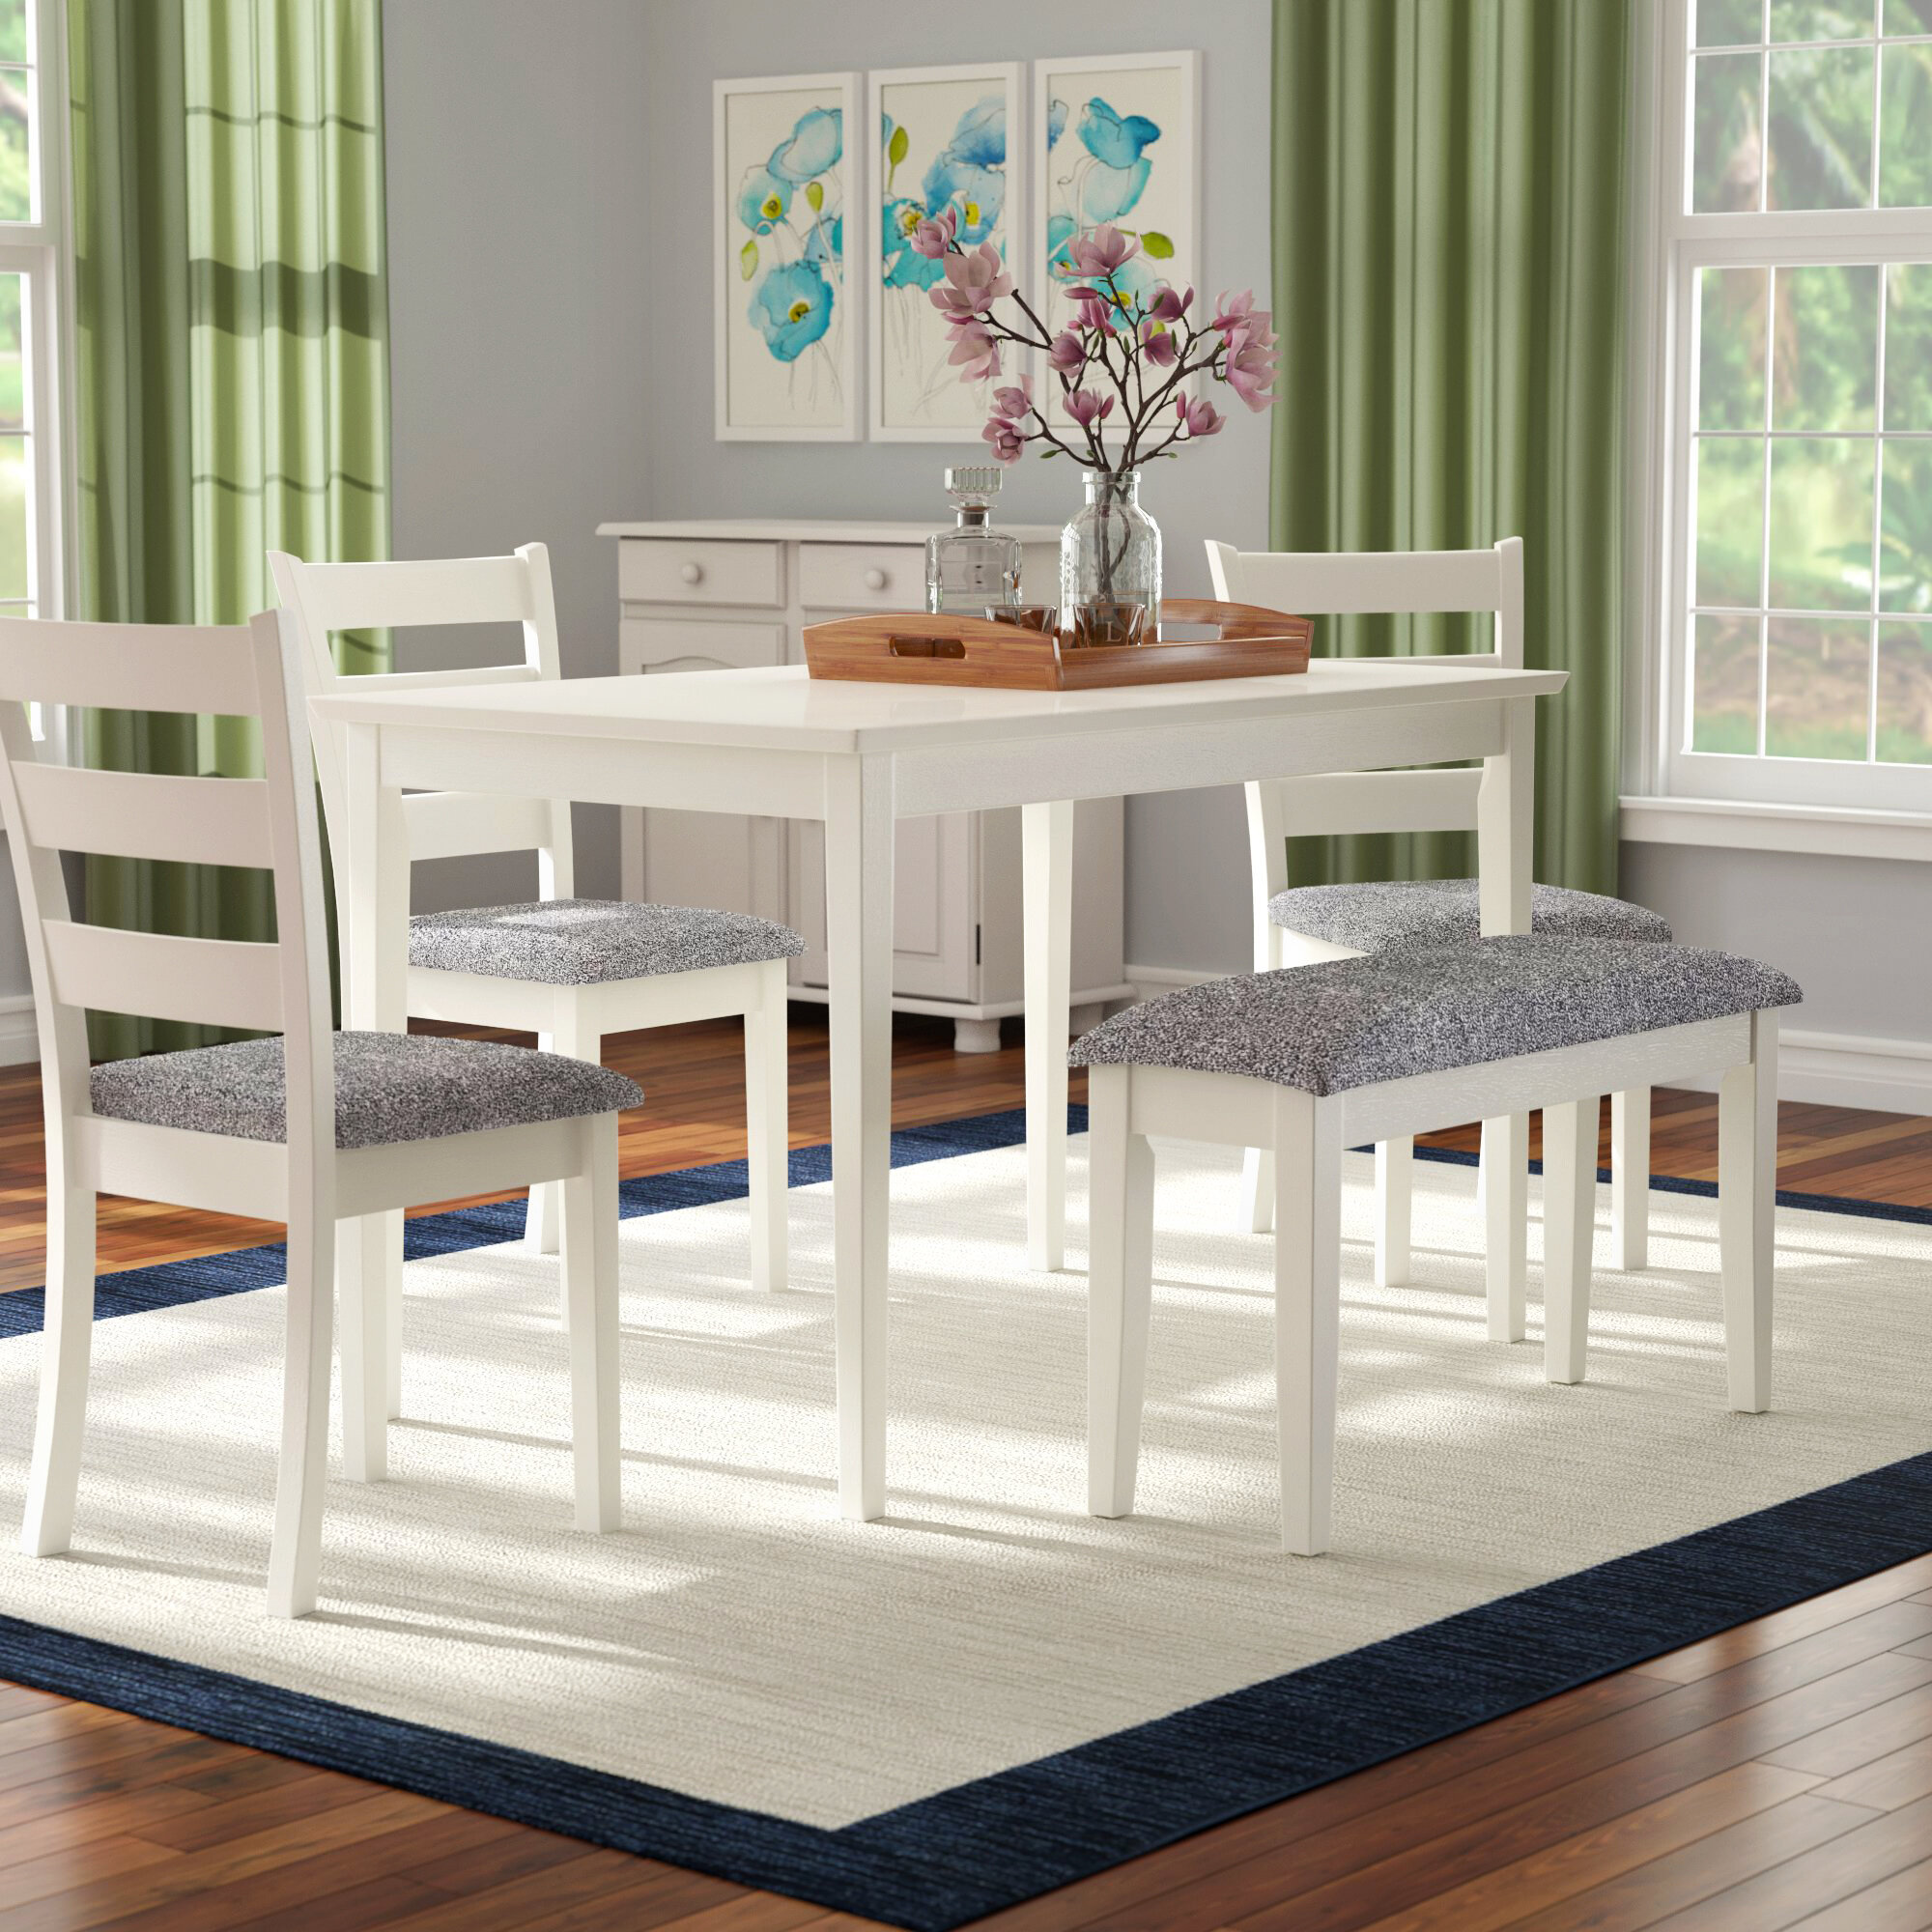 Image of: Cottage Country Dining Table With Chair And Bench Kitchen Dining Room Sets You Ll Love In 2020 Wayfair